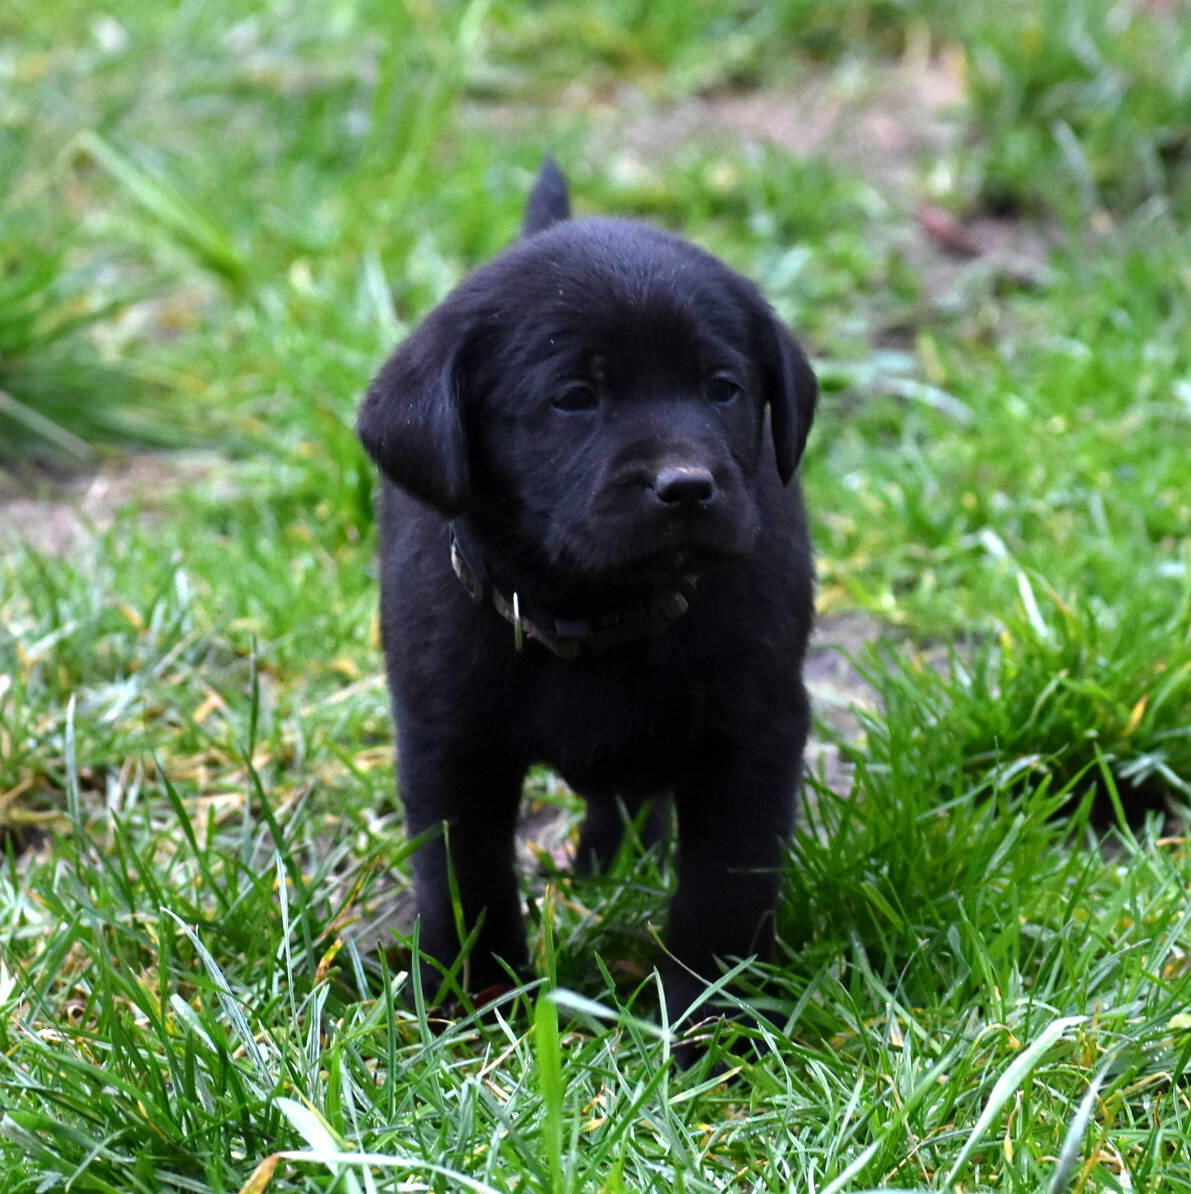 Black Labrador puppies Dec. 2018-4.JPG